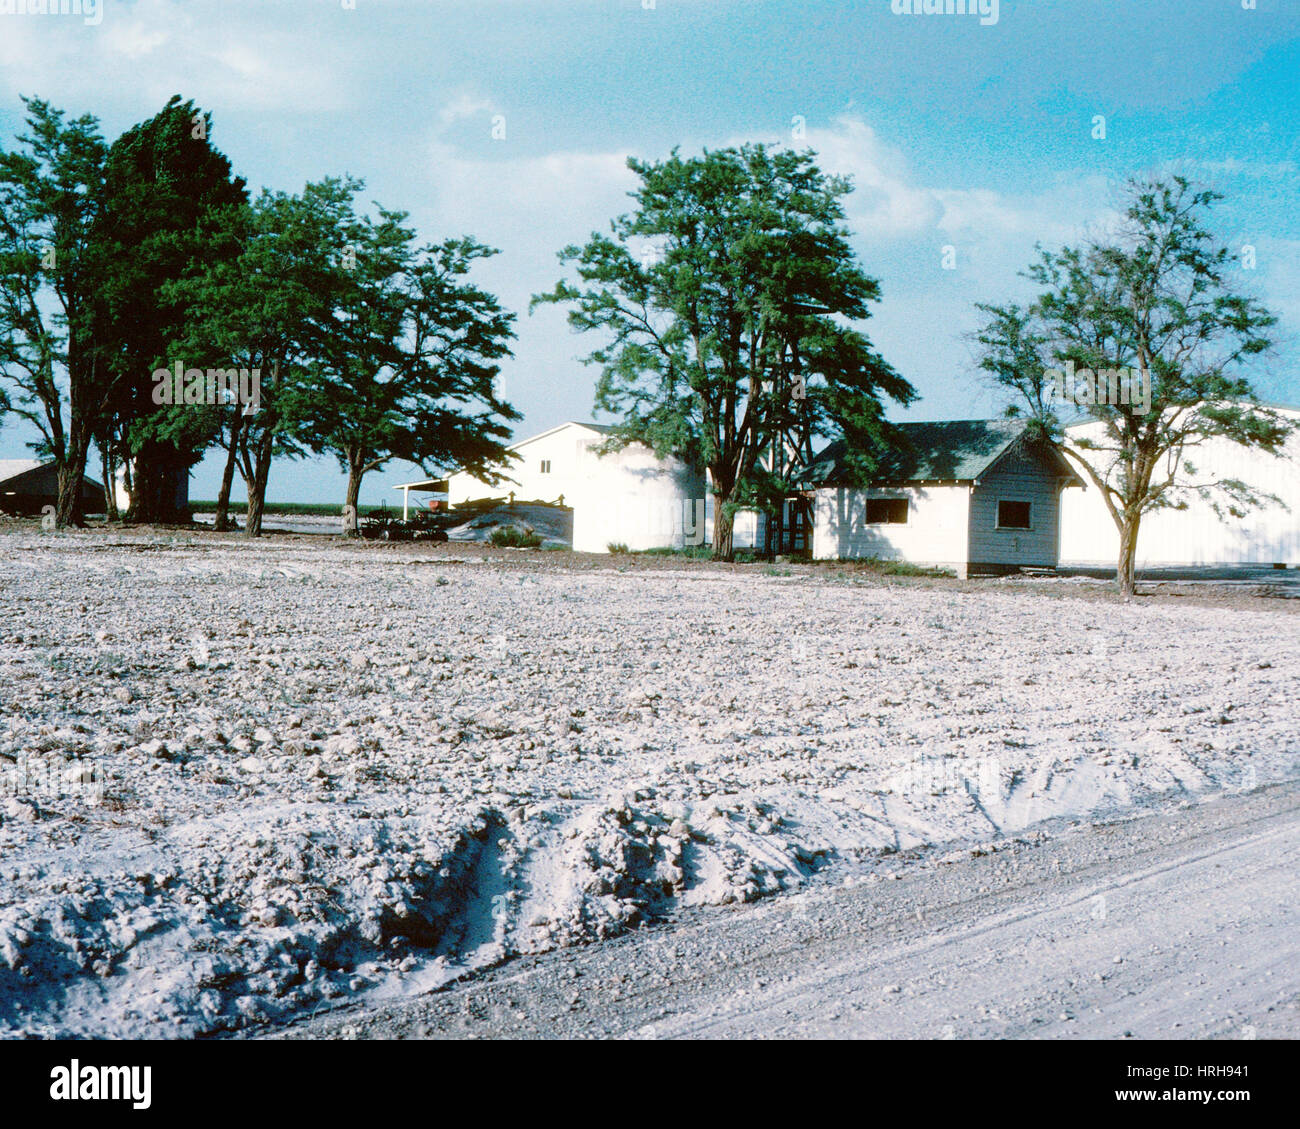 Aftermath, Mount St. Helens - Stock Image